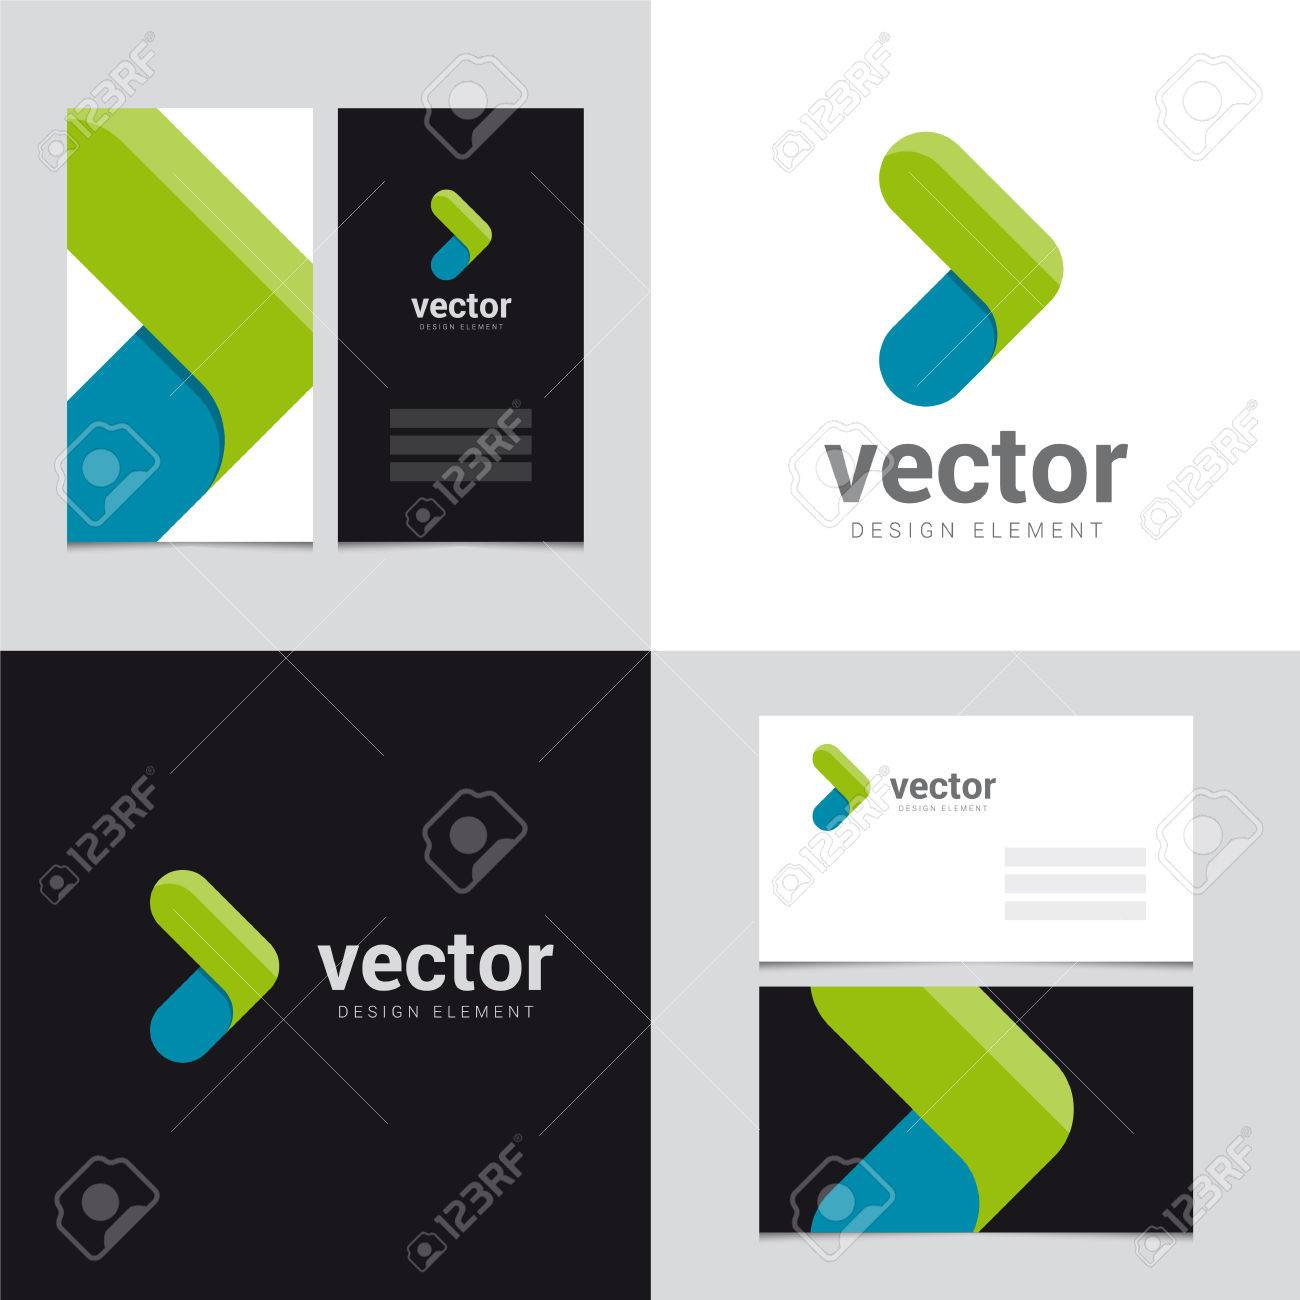 Logo design element with two business cards template 27 vector logo design element with two business cards template 27 vector graphic design elements for reheart Gallery